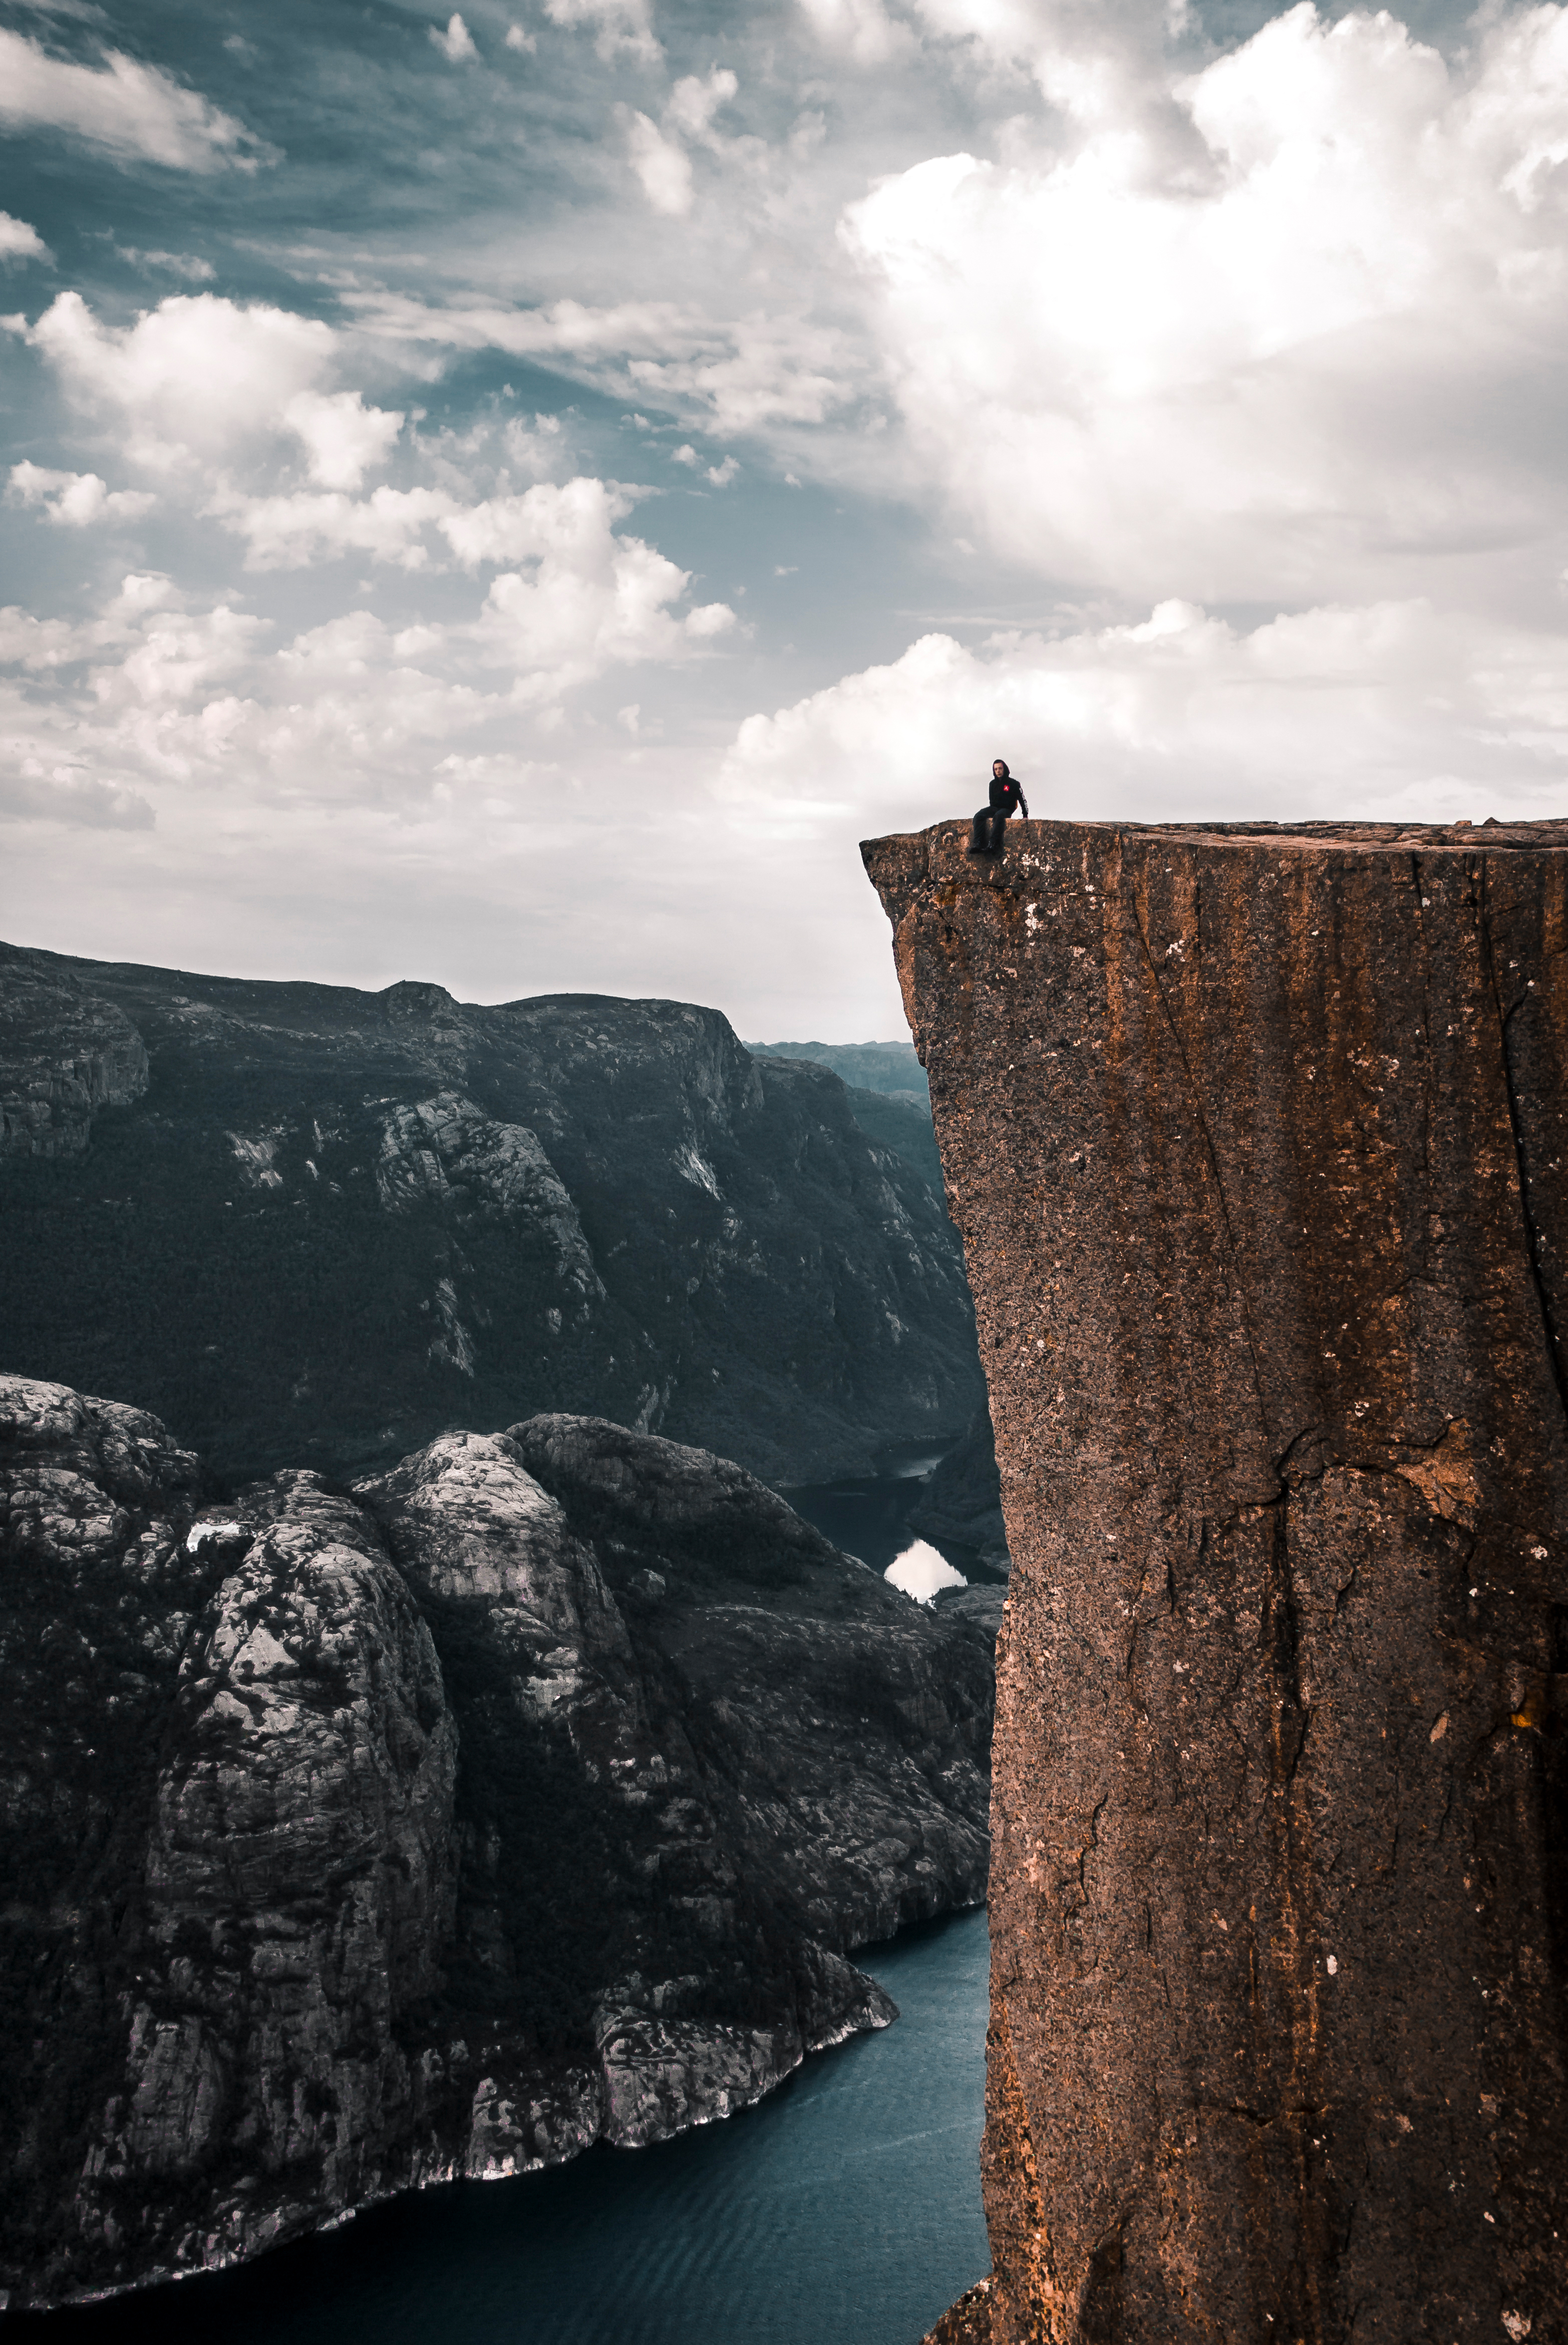 People Sitting on the Edge of a Cliff · Free Stock Photo